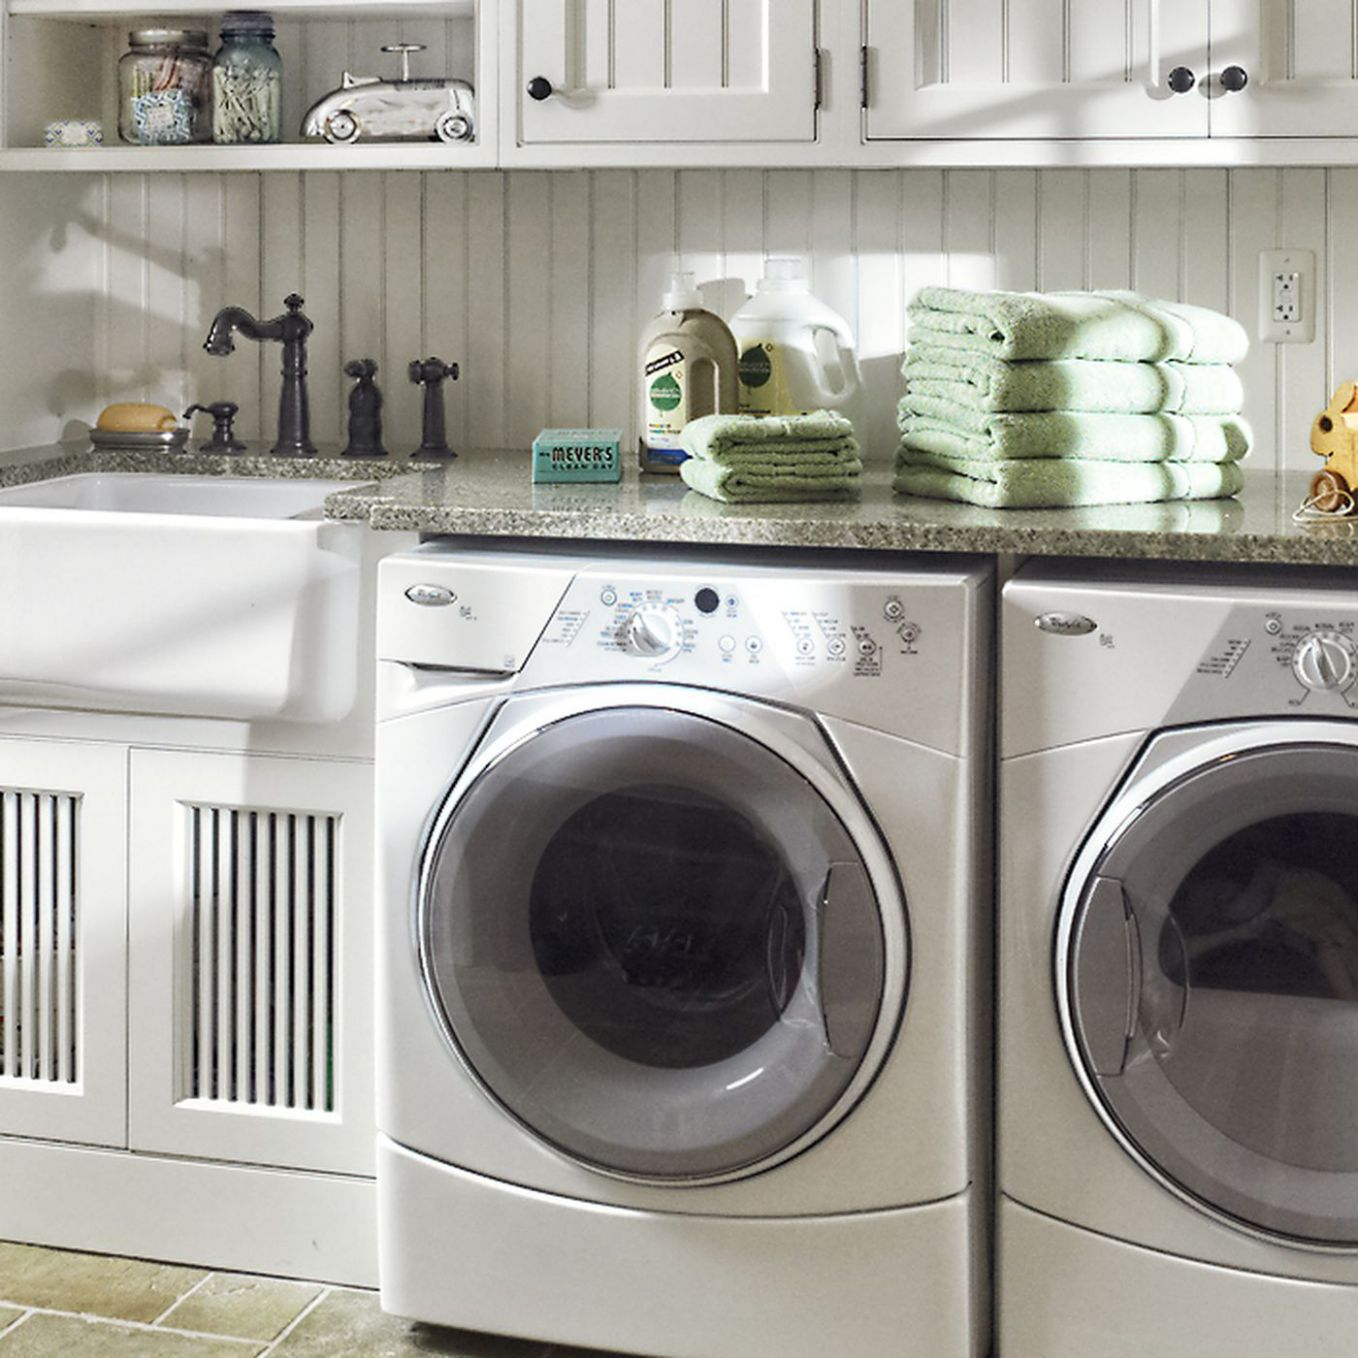 Read This Before You Redo Your Laundry Room - This Old House - laundry room ideas for top loading washers